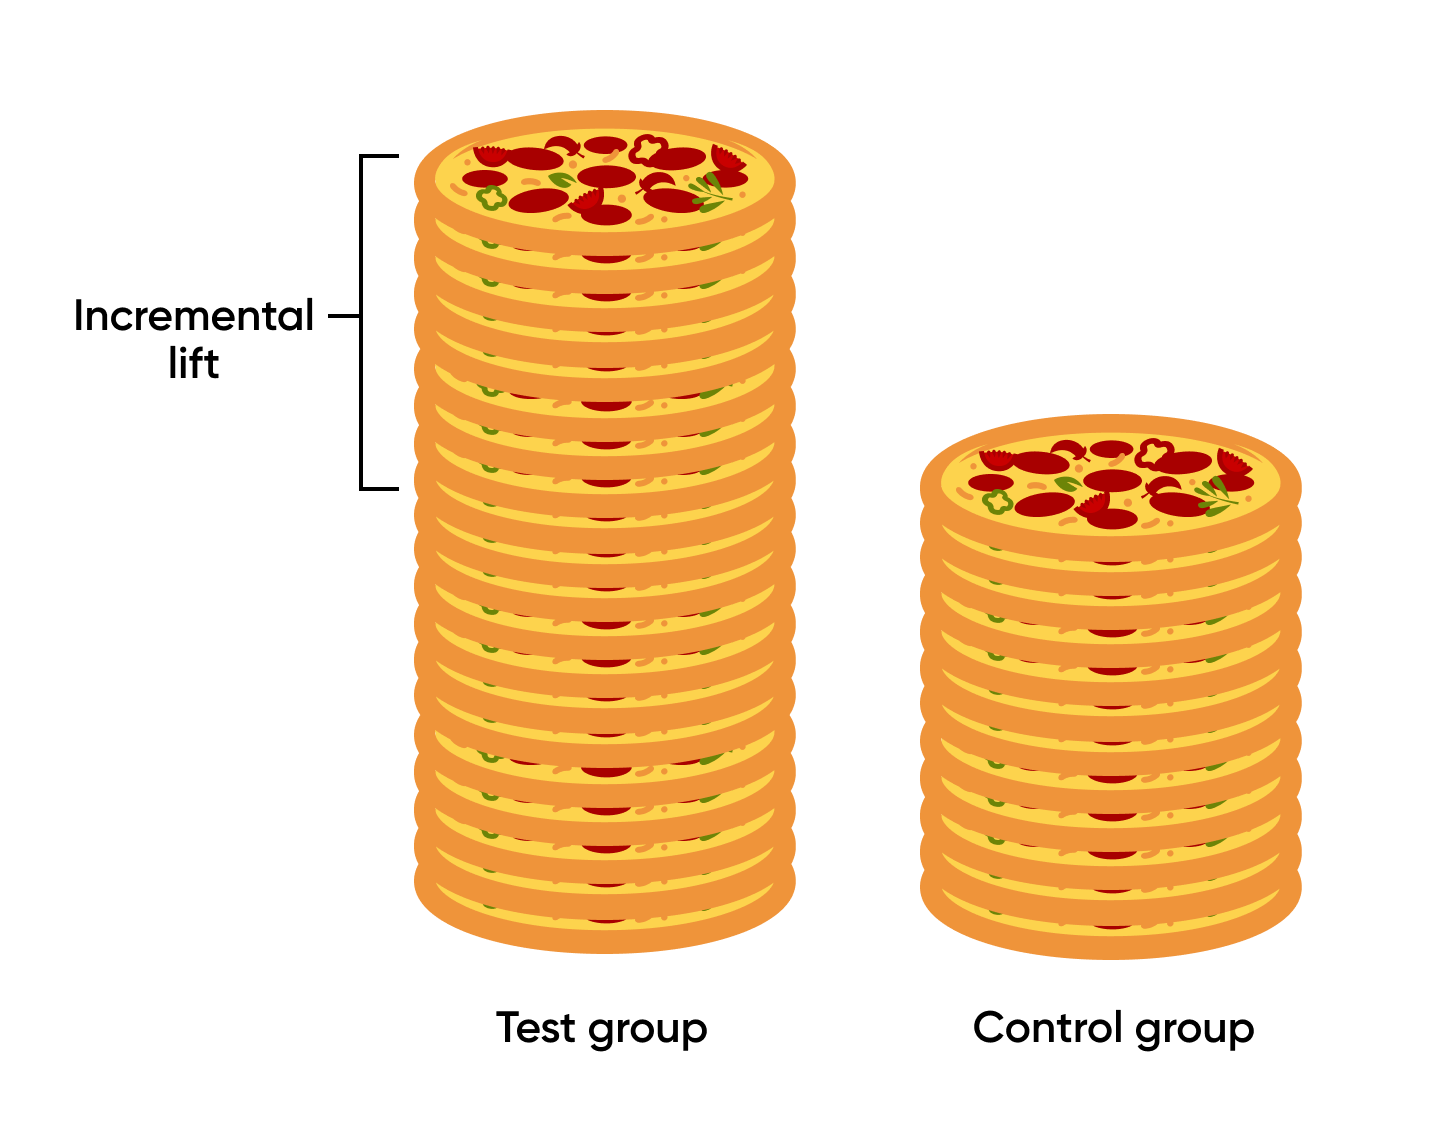 How is incremental impact determined? test group vs control group